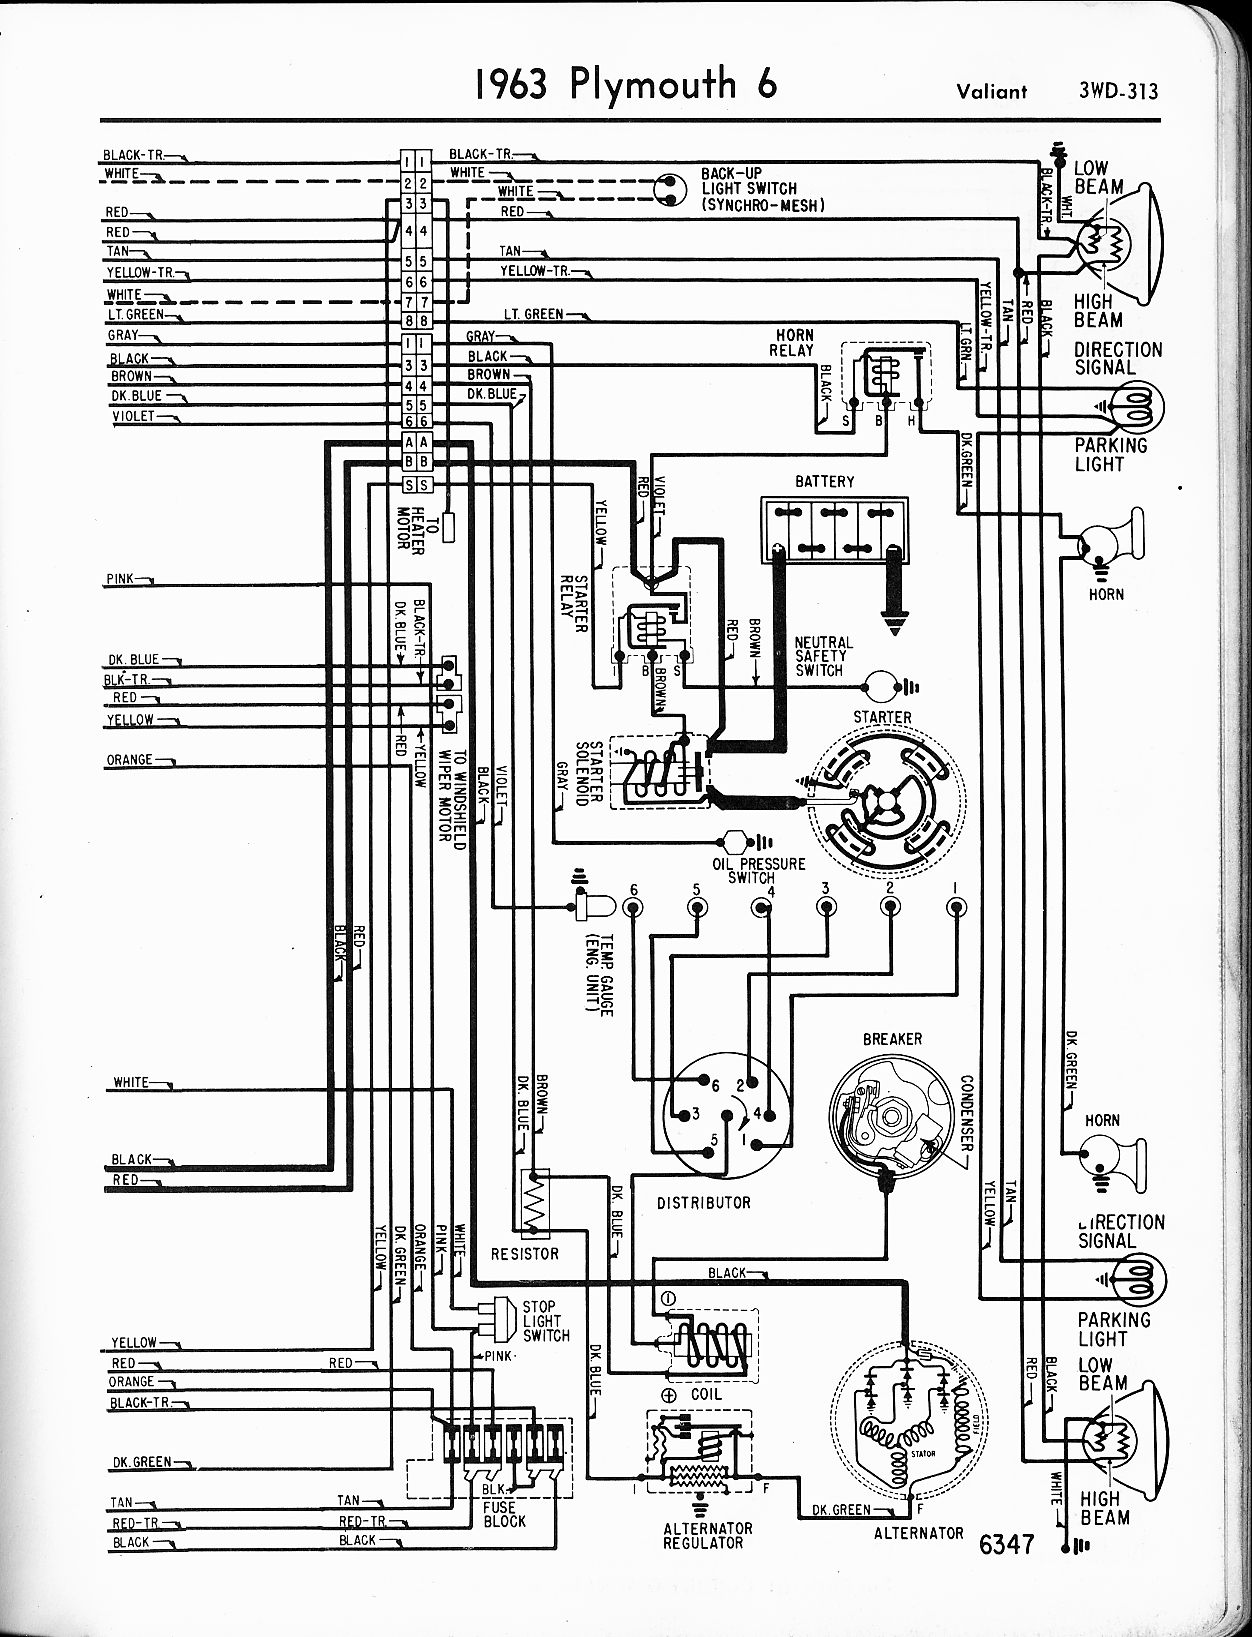 2FB43 1950 Plymouth Engine Wiring Diagram | Wiring ResourcesWiring Resources